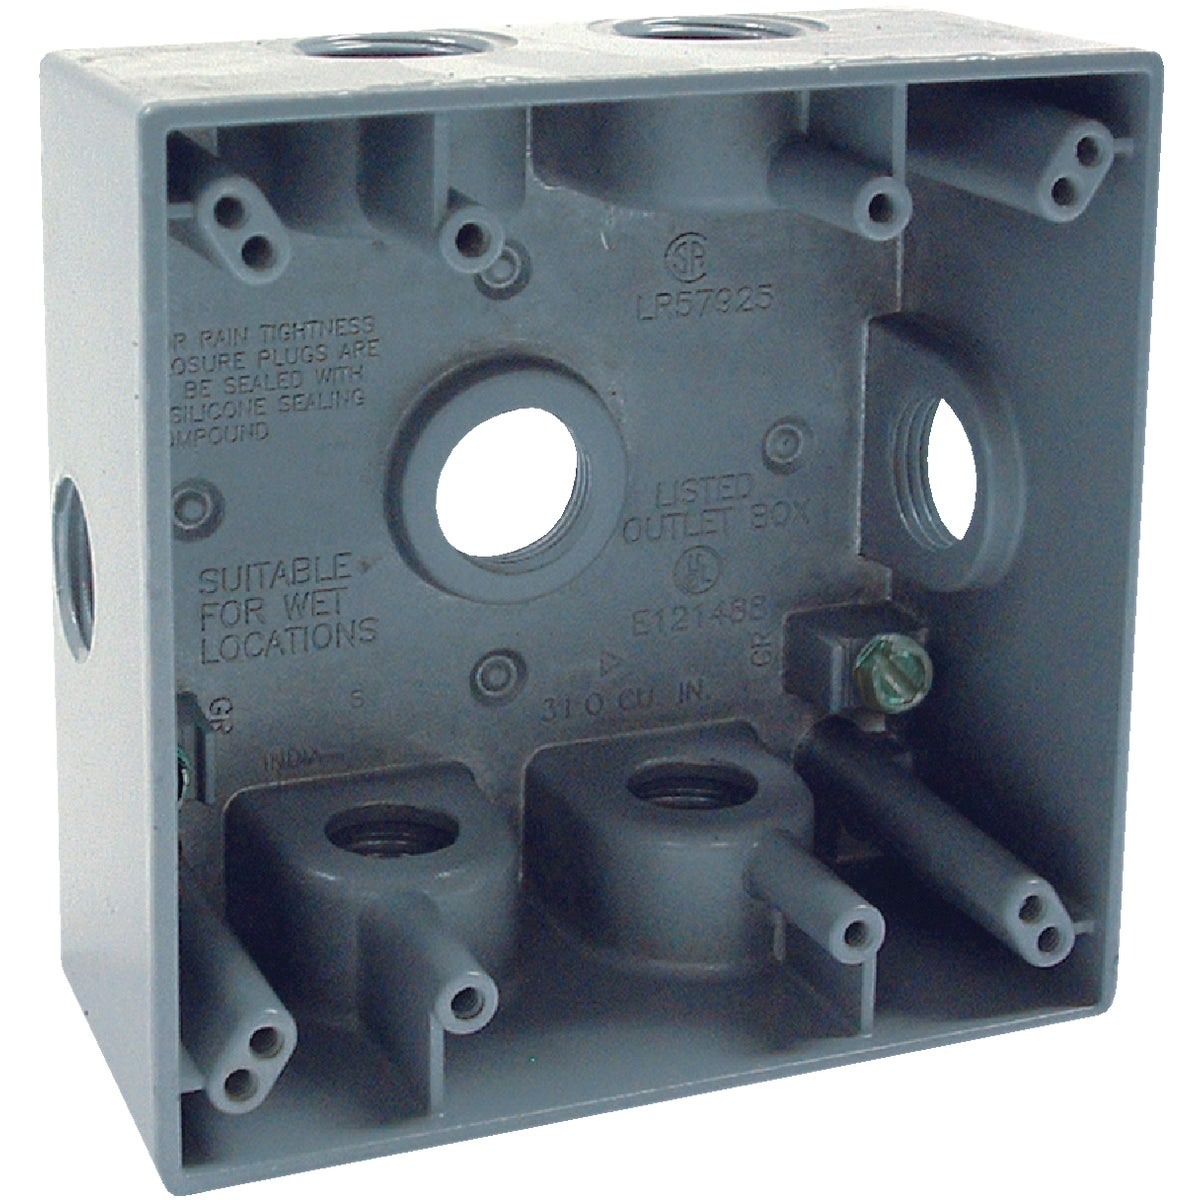 Bell 2-Gang 1/2 In. 7-Outlet Gray Aluminum Electrical Outdoor Outlet Box